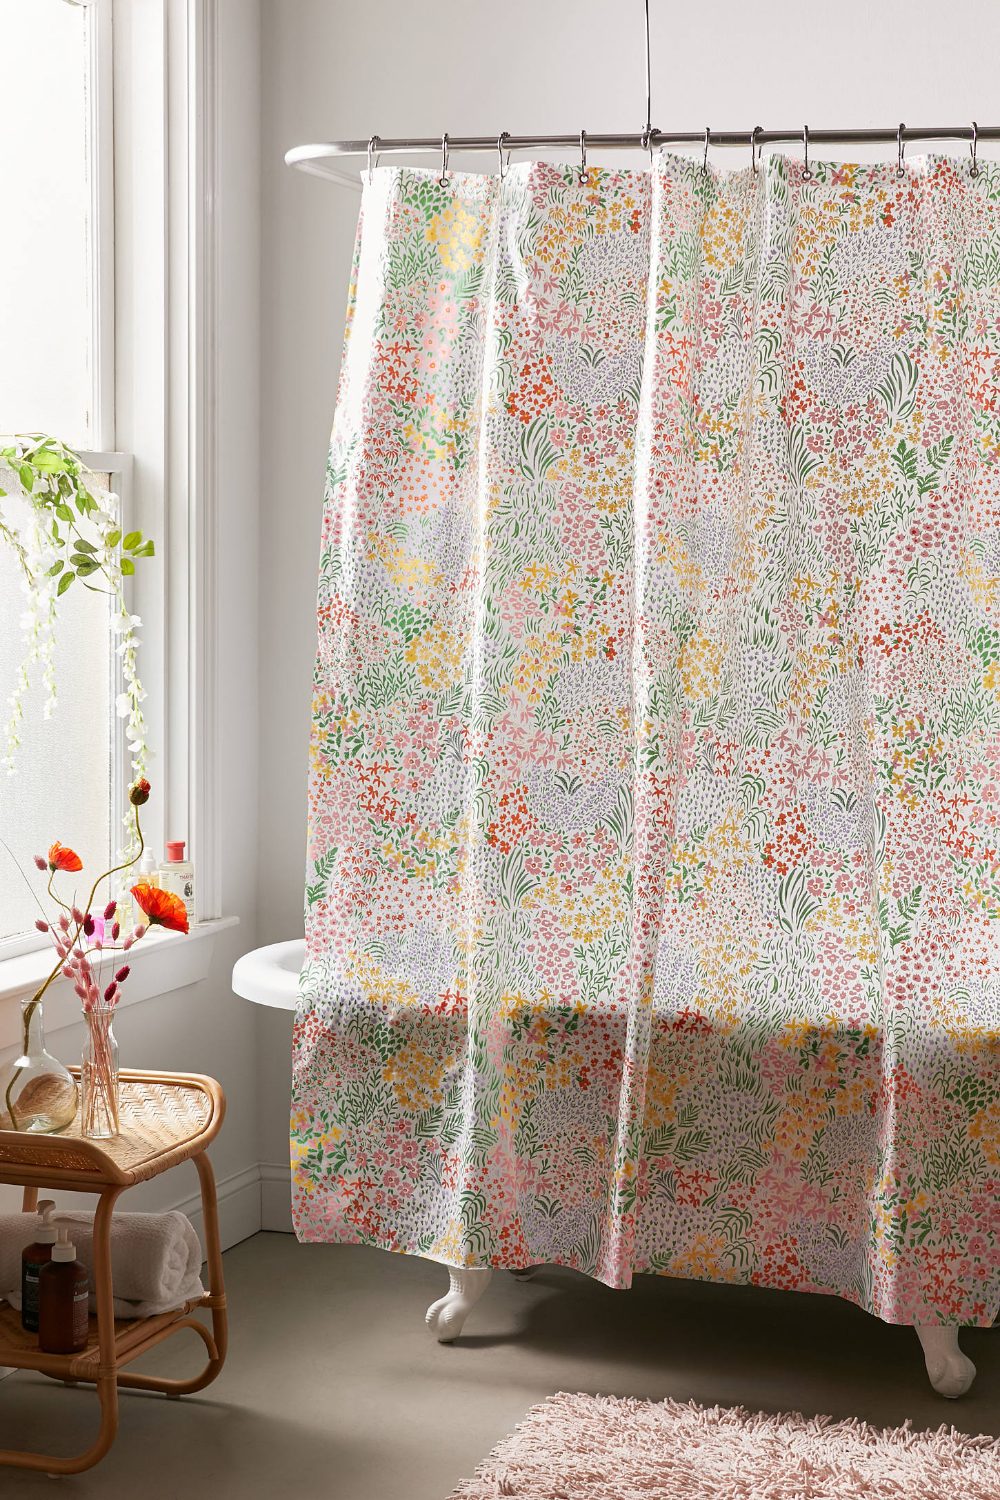 Meadow Floral Peva Shower Curtain Floral Shower Curtains Curtains Bathroom Renovation Cost